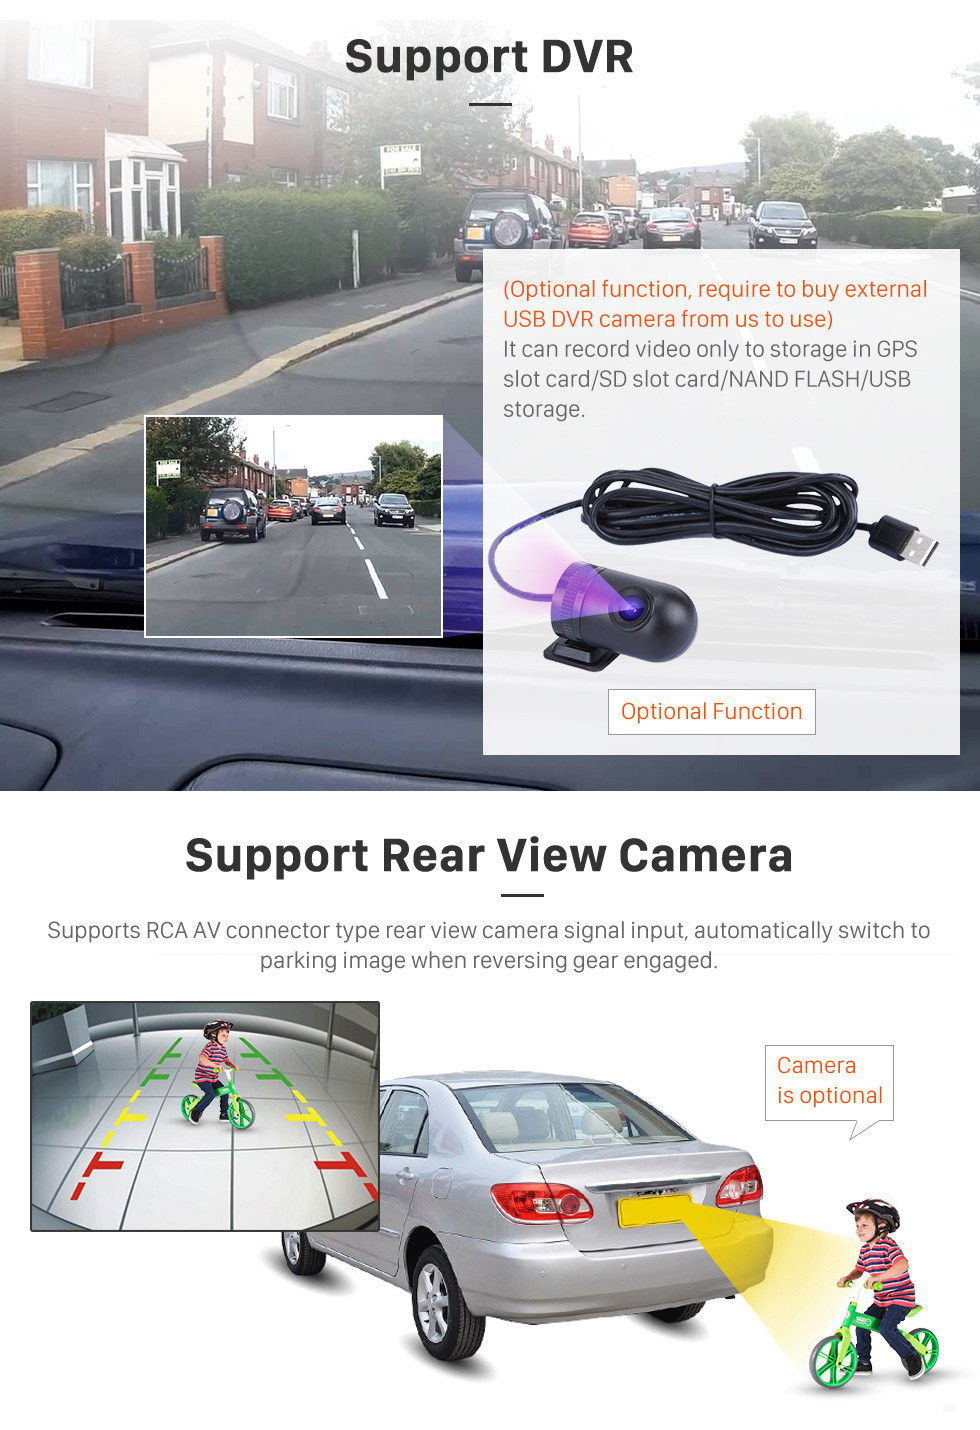 Seicane Android 9.0 9 inch HD 1024*600 Touch Screen Car Radio For 2010-2015 KIA Sportage GPS Navigation Bluetooth WIFI USB Mirror Link Support DVR OBD2 4G WiFi Steering Wheel Control Backup Camera